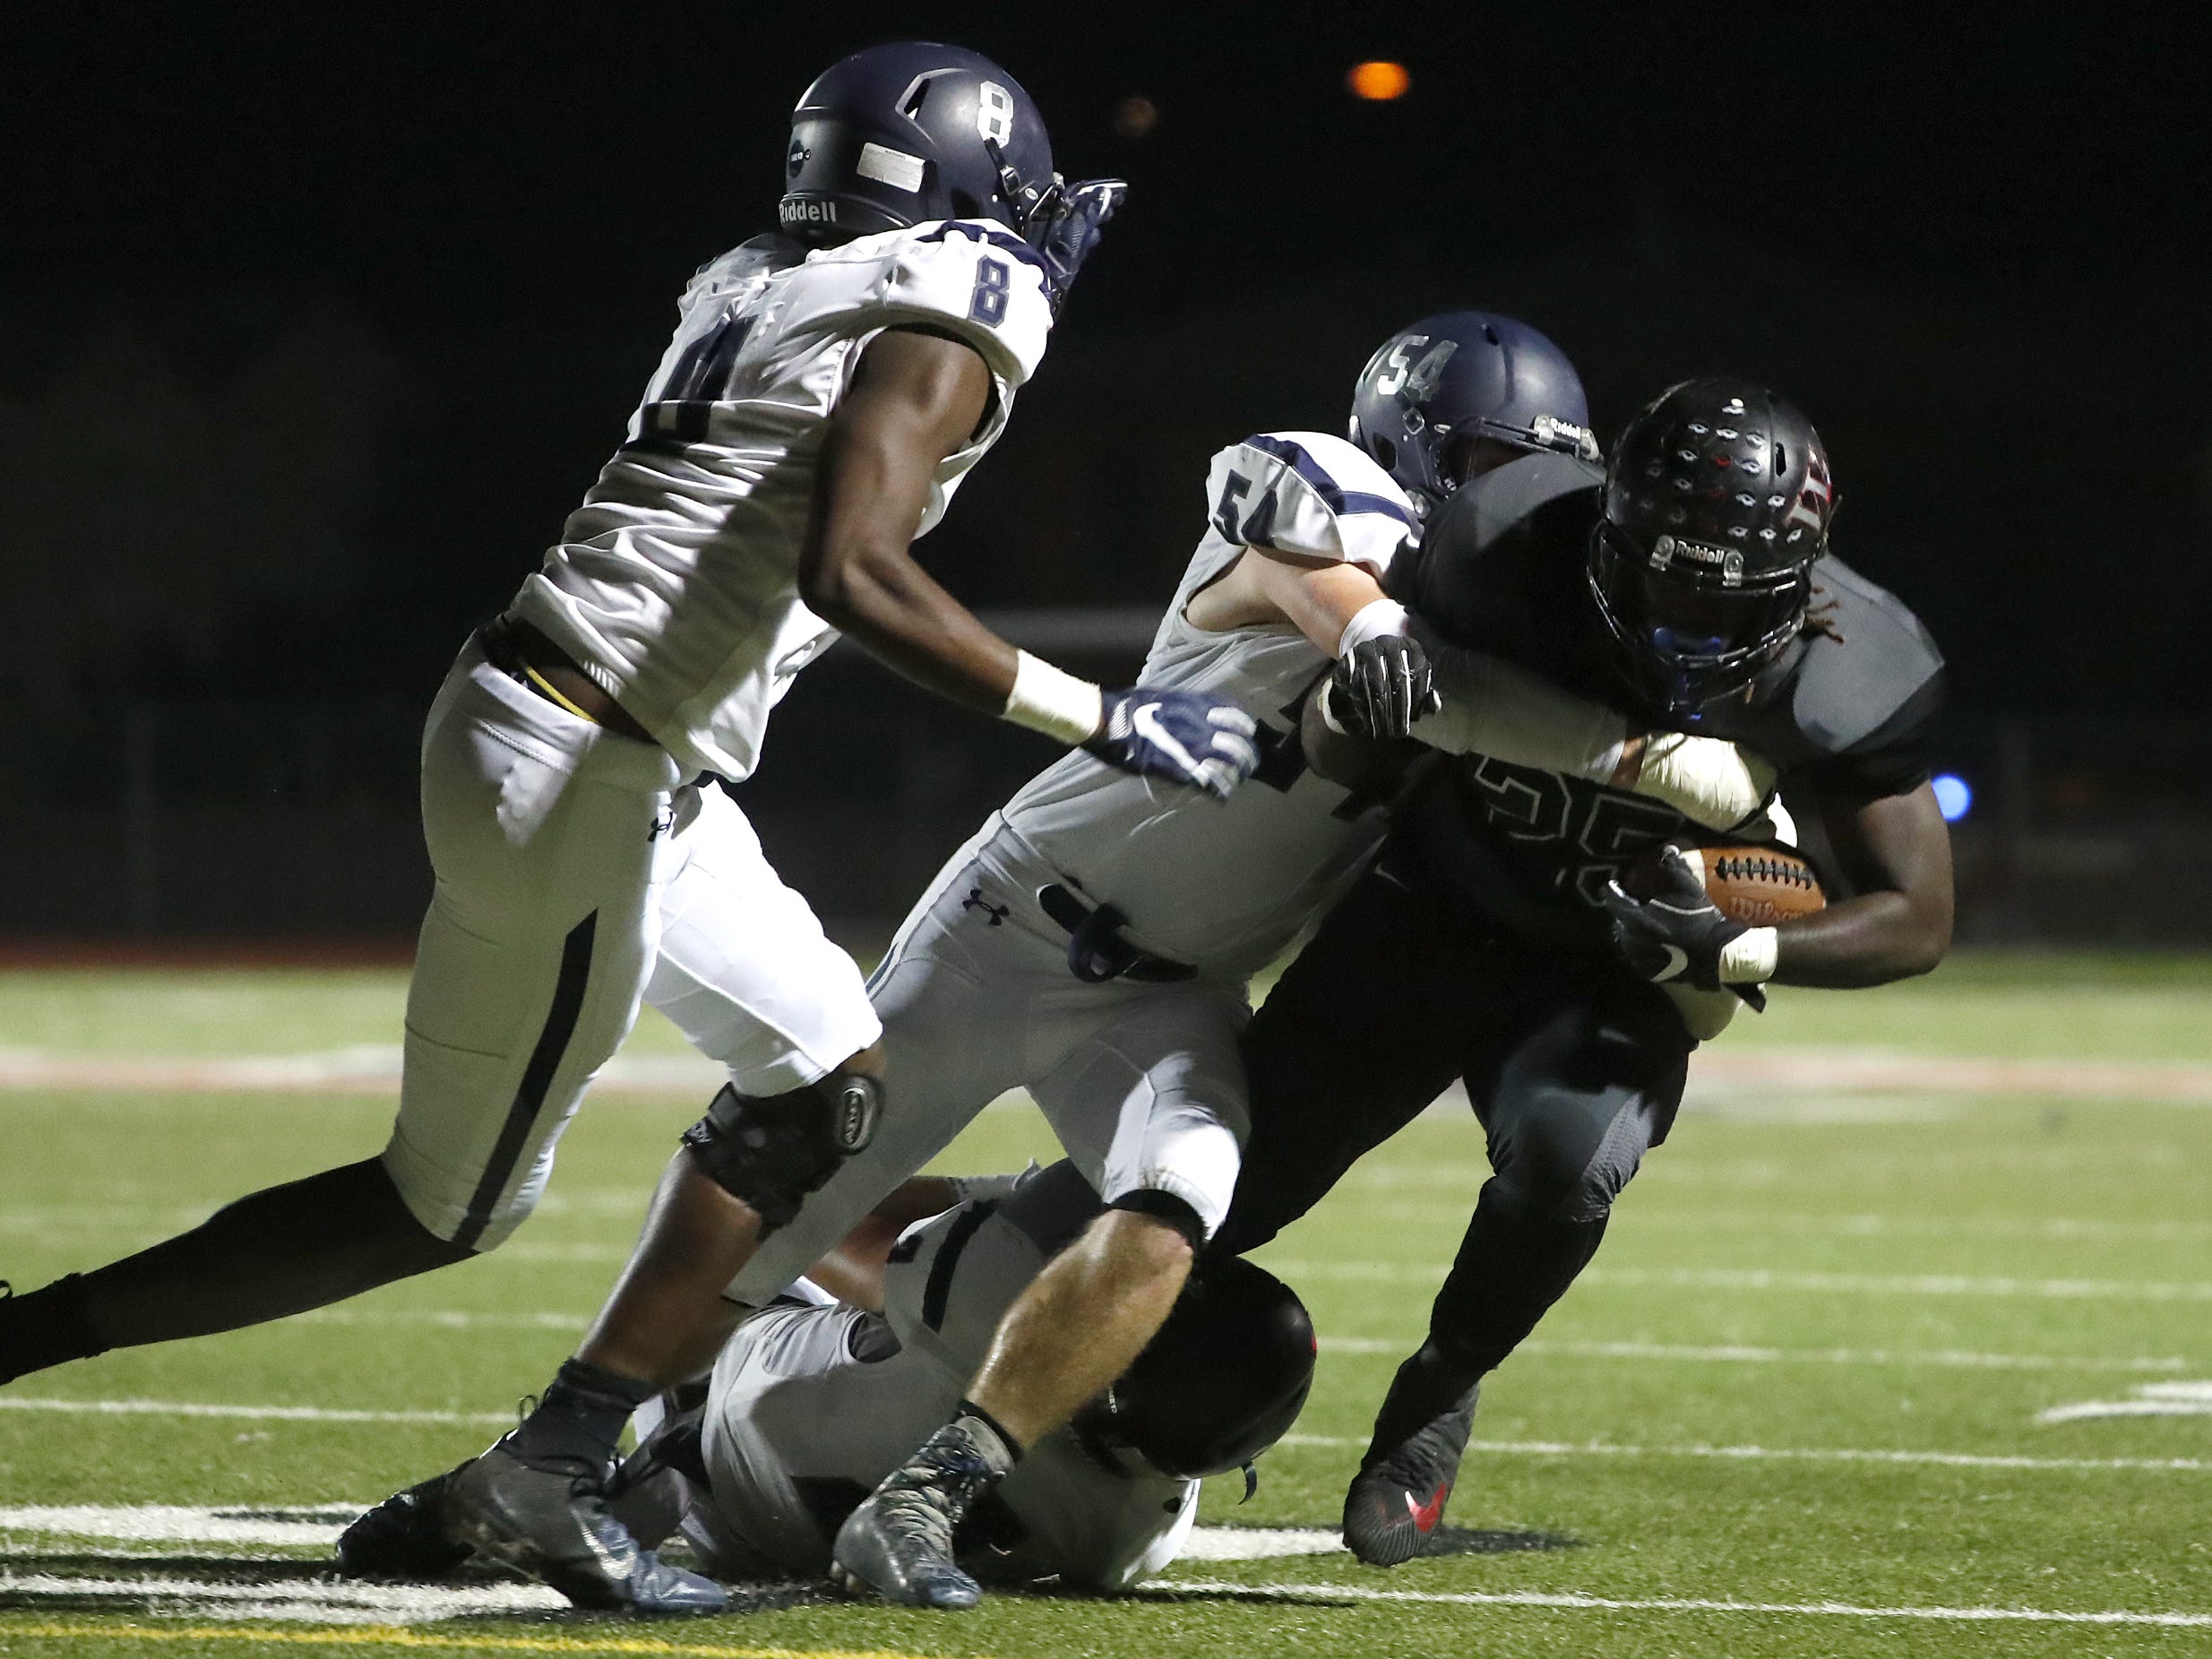 Higley's Dylan Pedersen (54) tackles Williams Field's Jaden Thompson (25) during the first half at Williams Field High School in Gilbert, Ariz. on October 26, 2018.